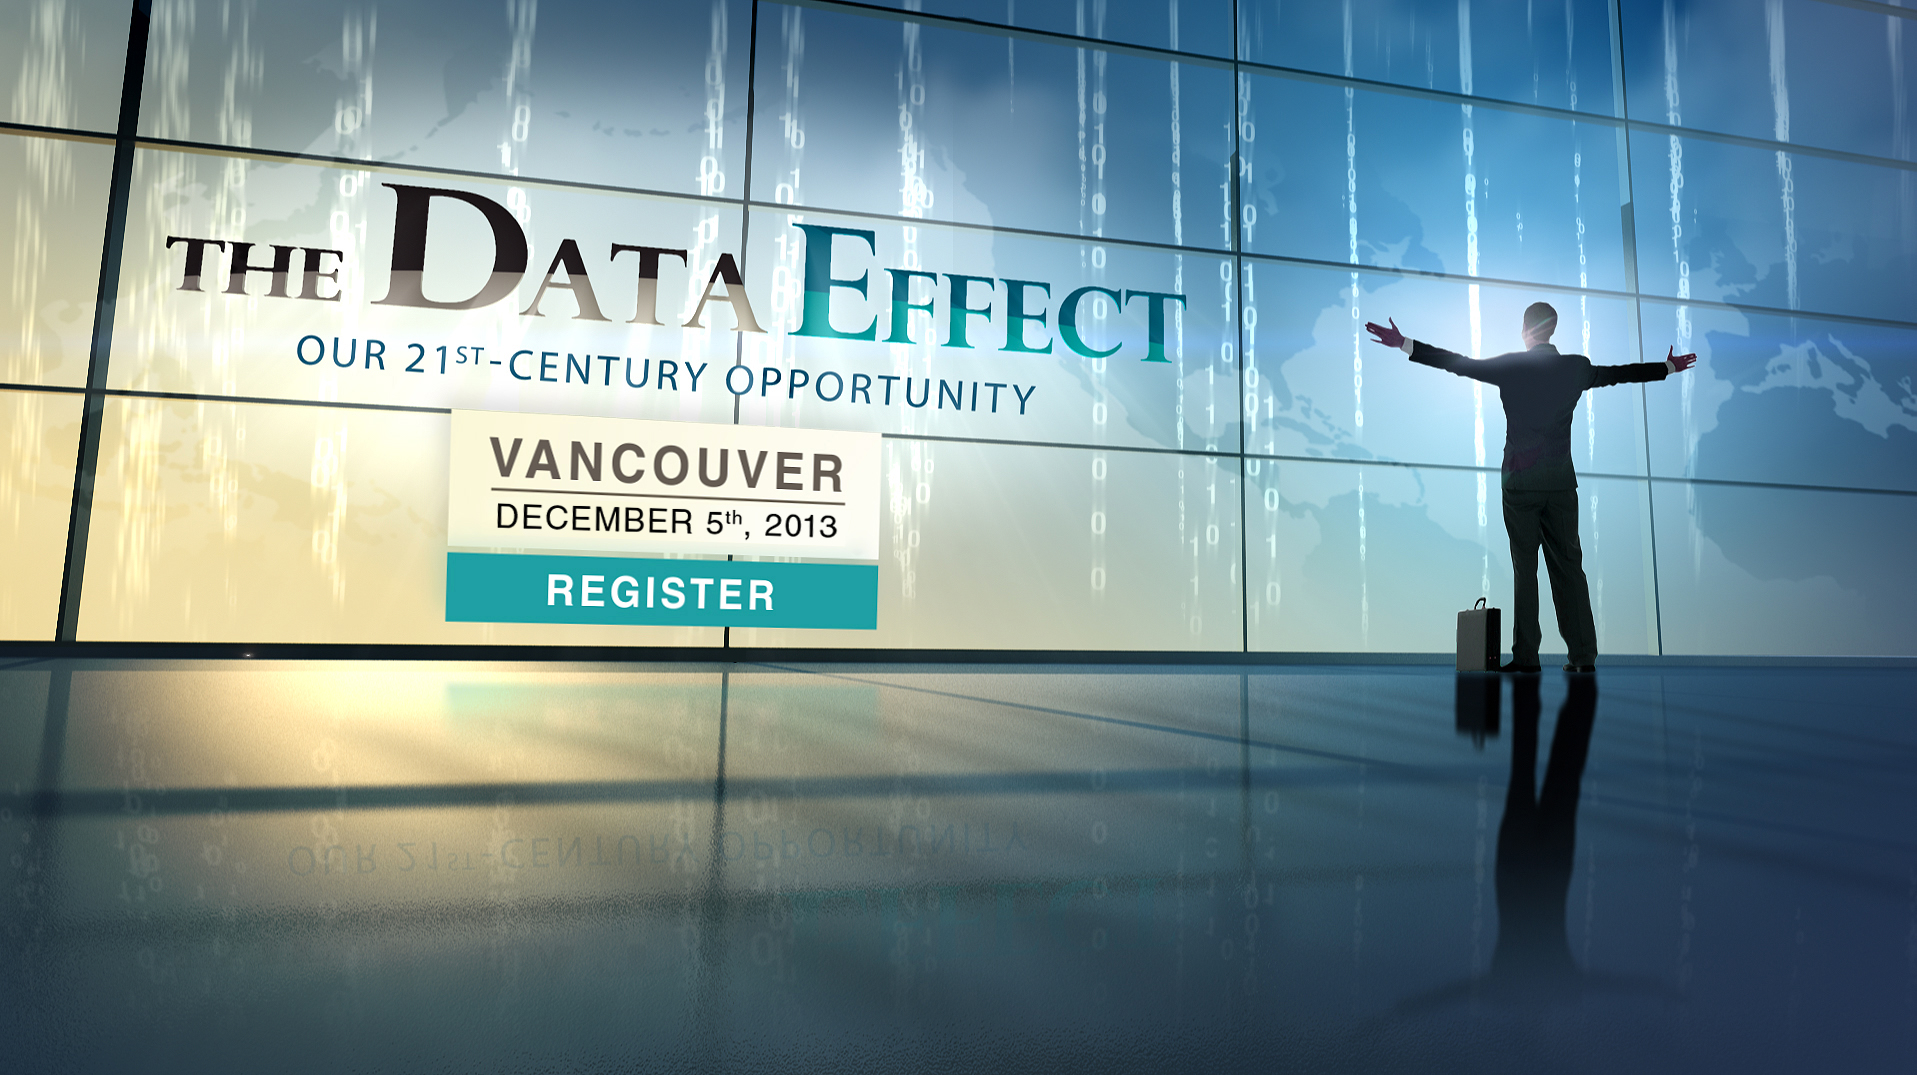 The Data Effect: Our 21st Century Opportunity